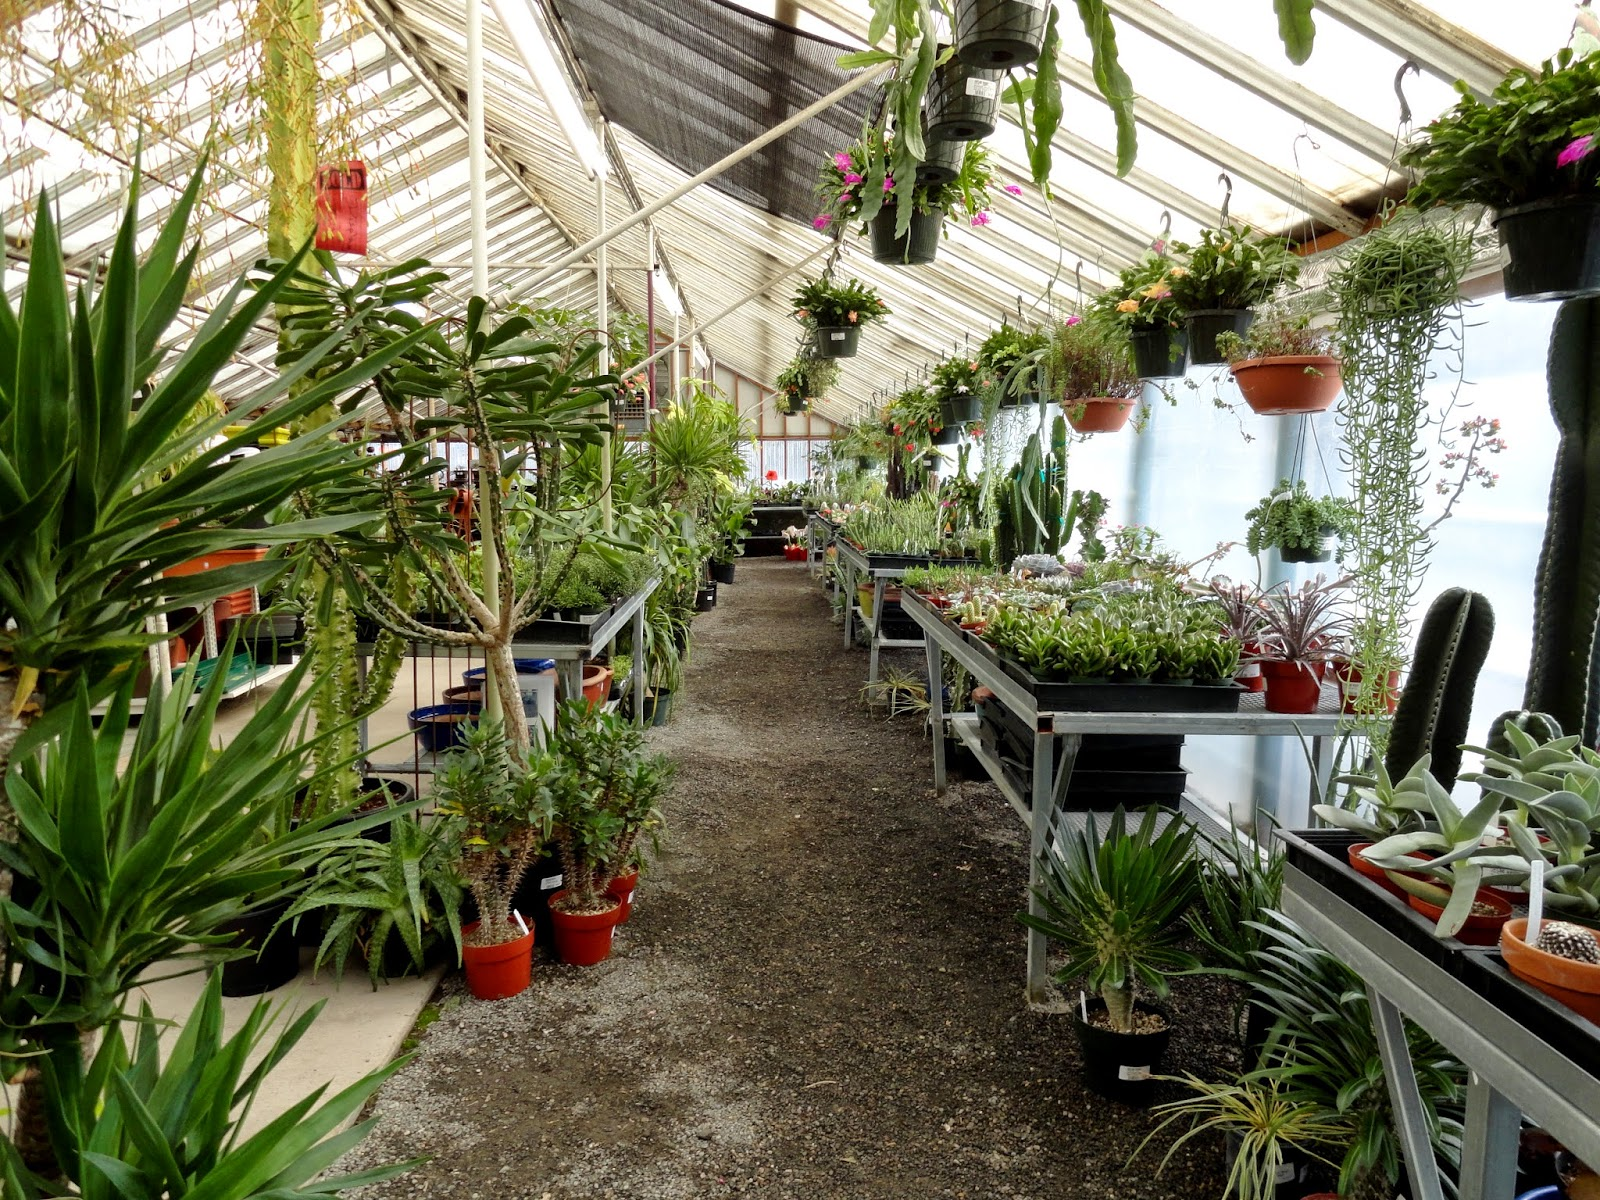 Visit Is To Portland Nursery And Timely Too Because This Coming Thursday January 15th The Beginning Of Their Annual Houseplant Pottery